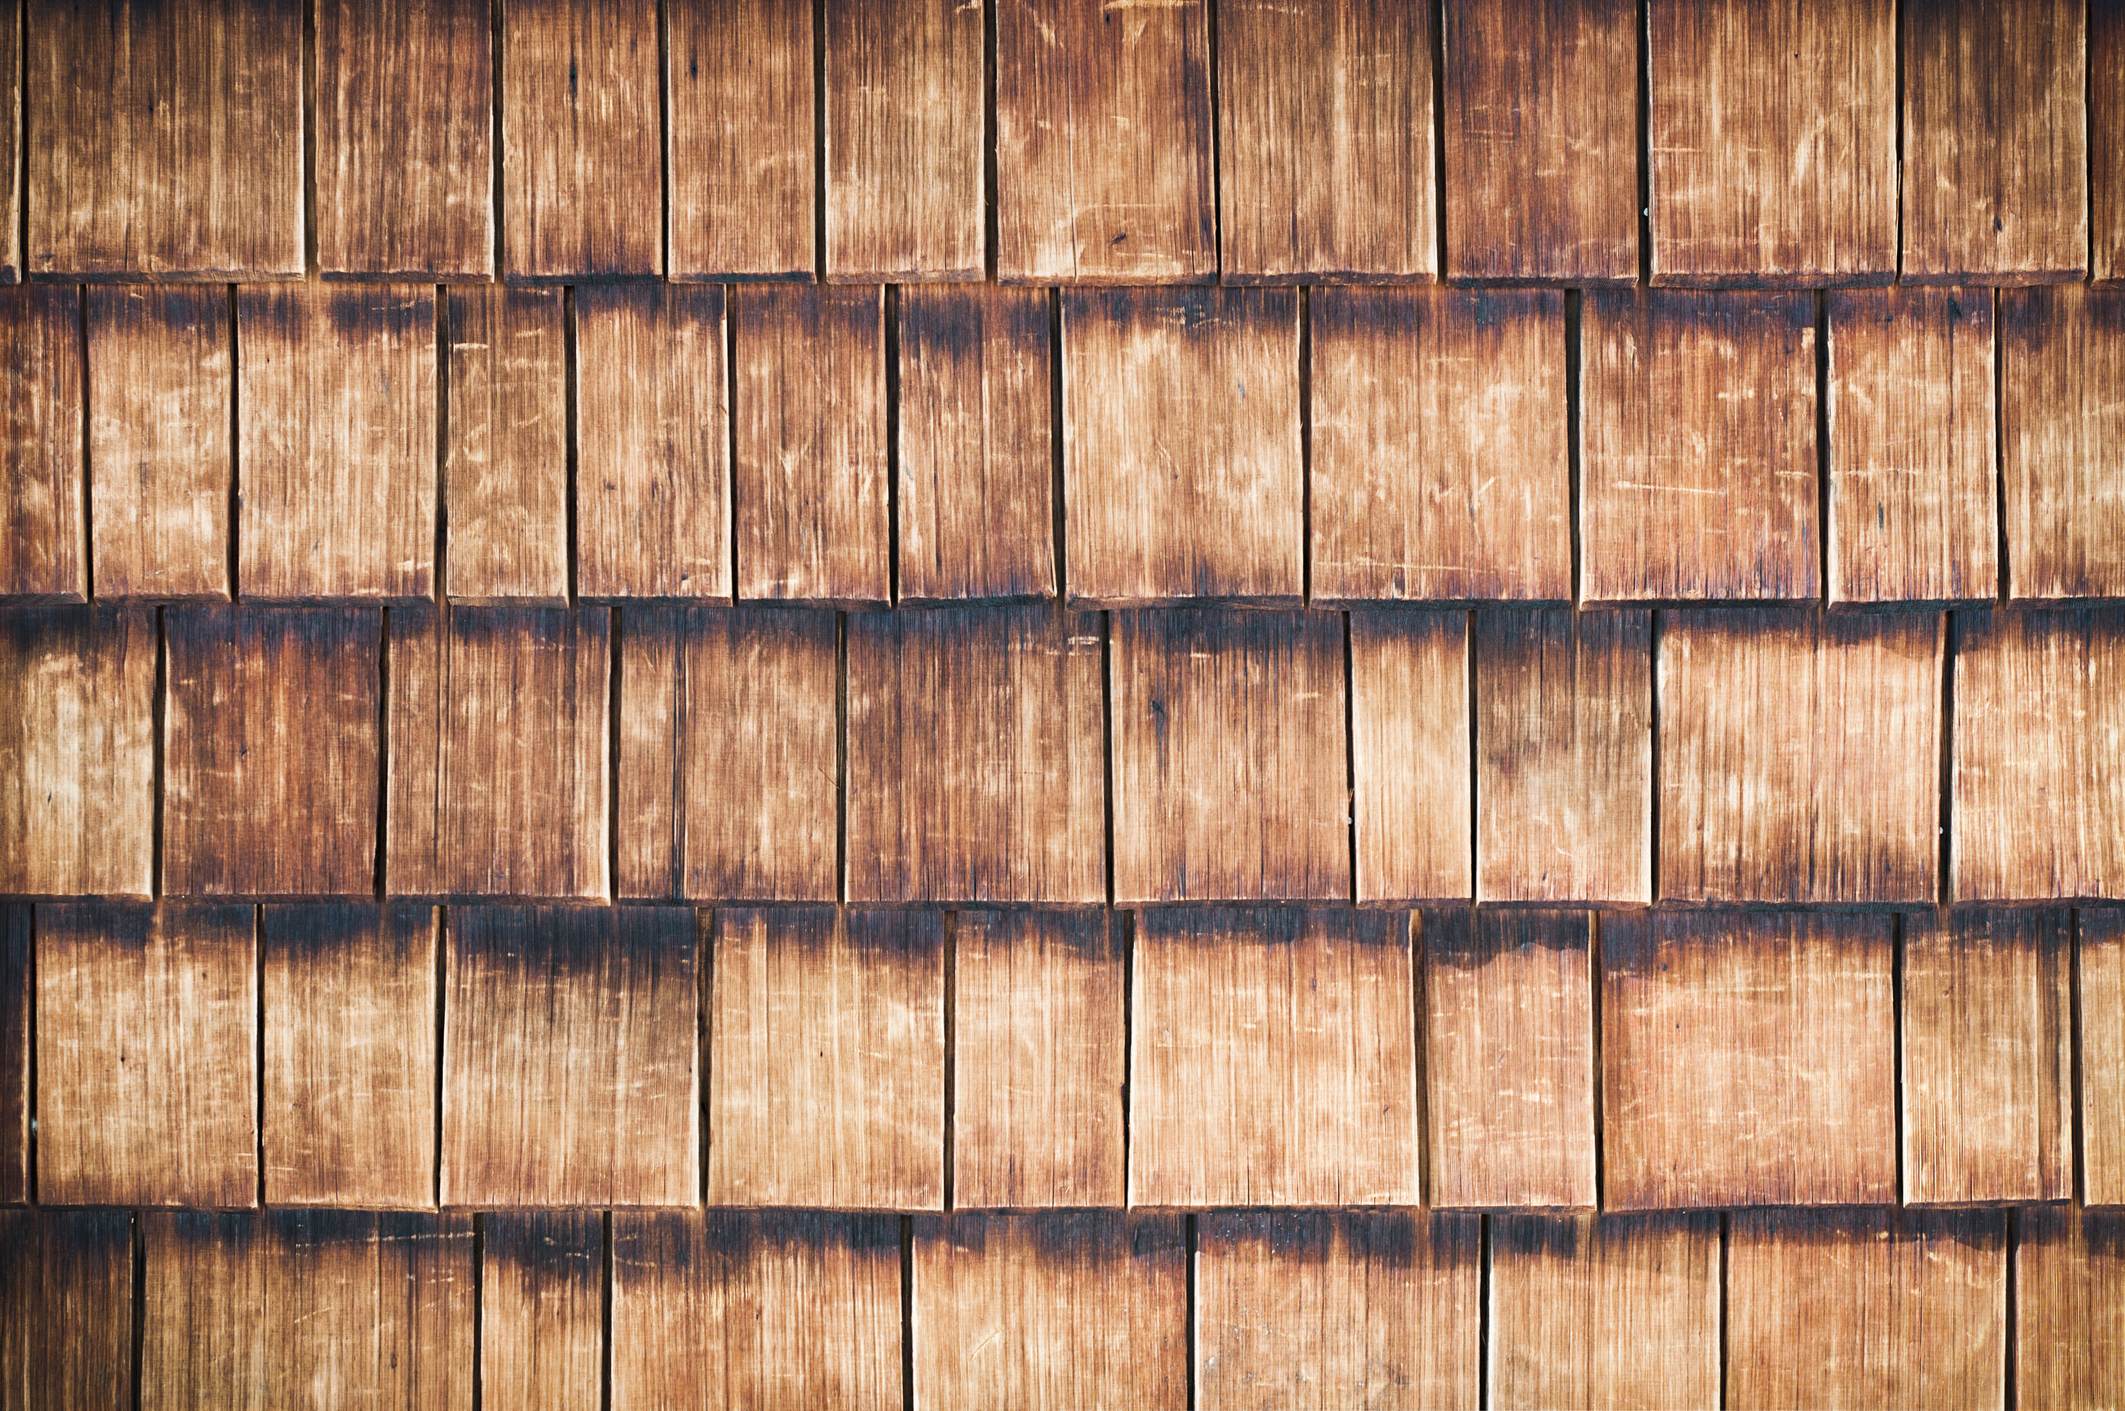 How To Keep Termites Away From Wood Siding